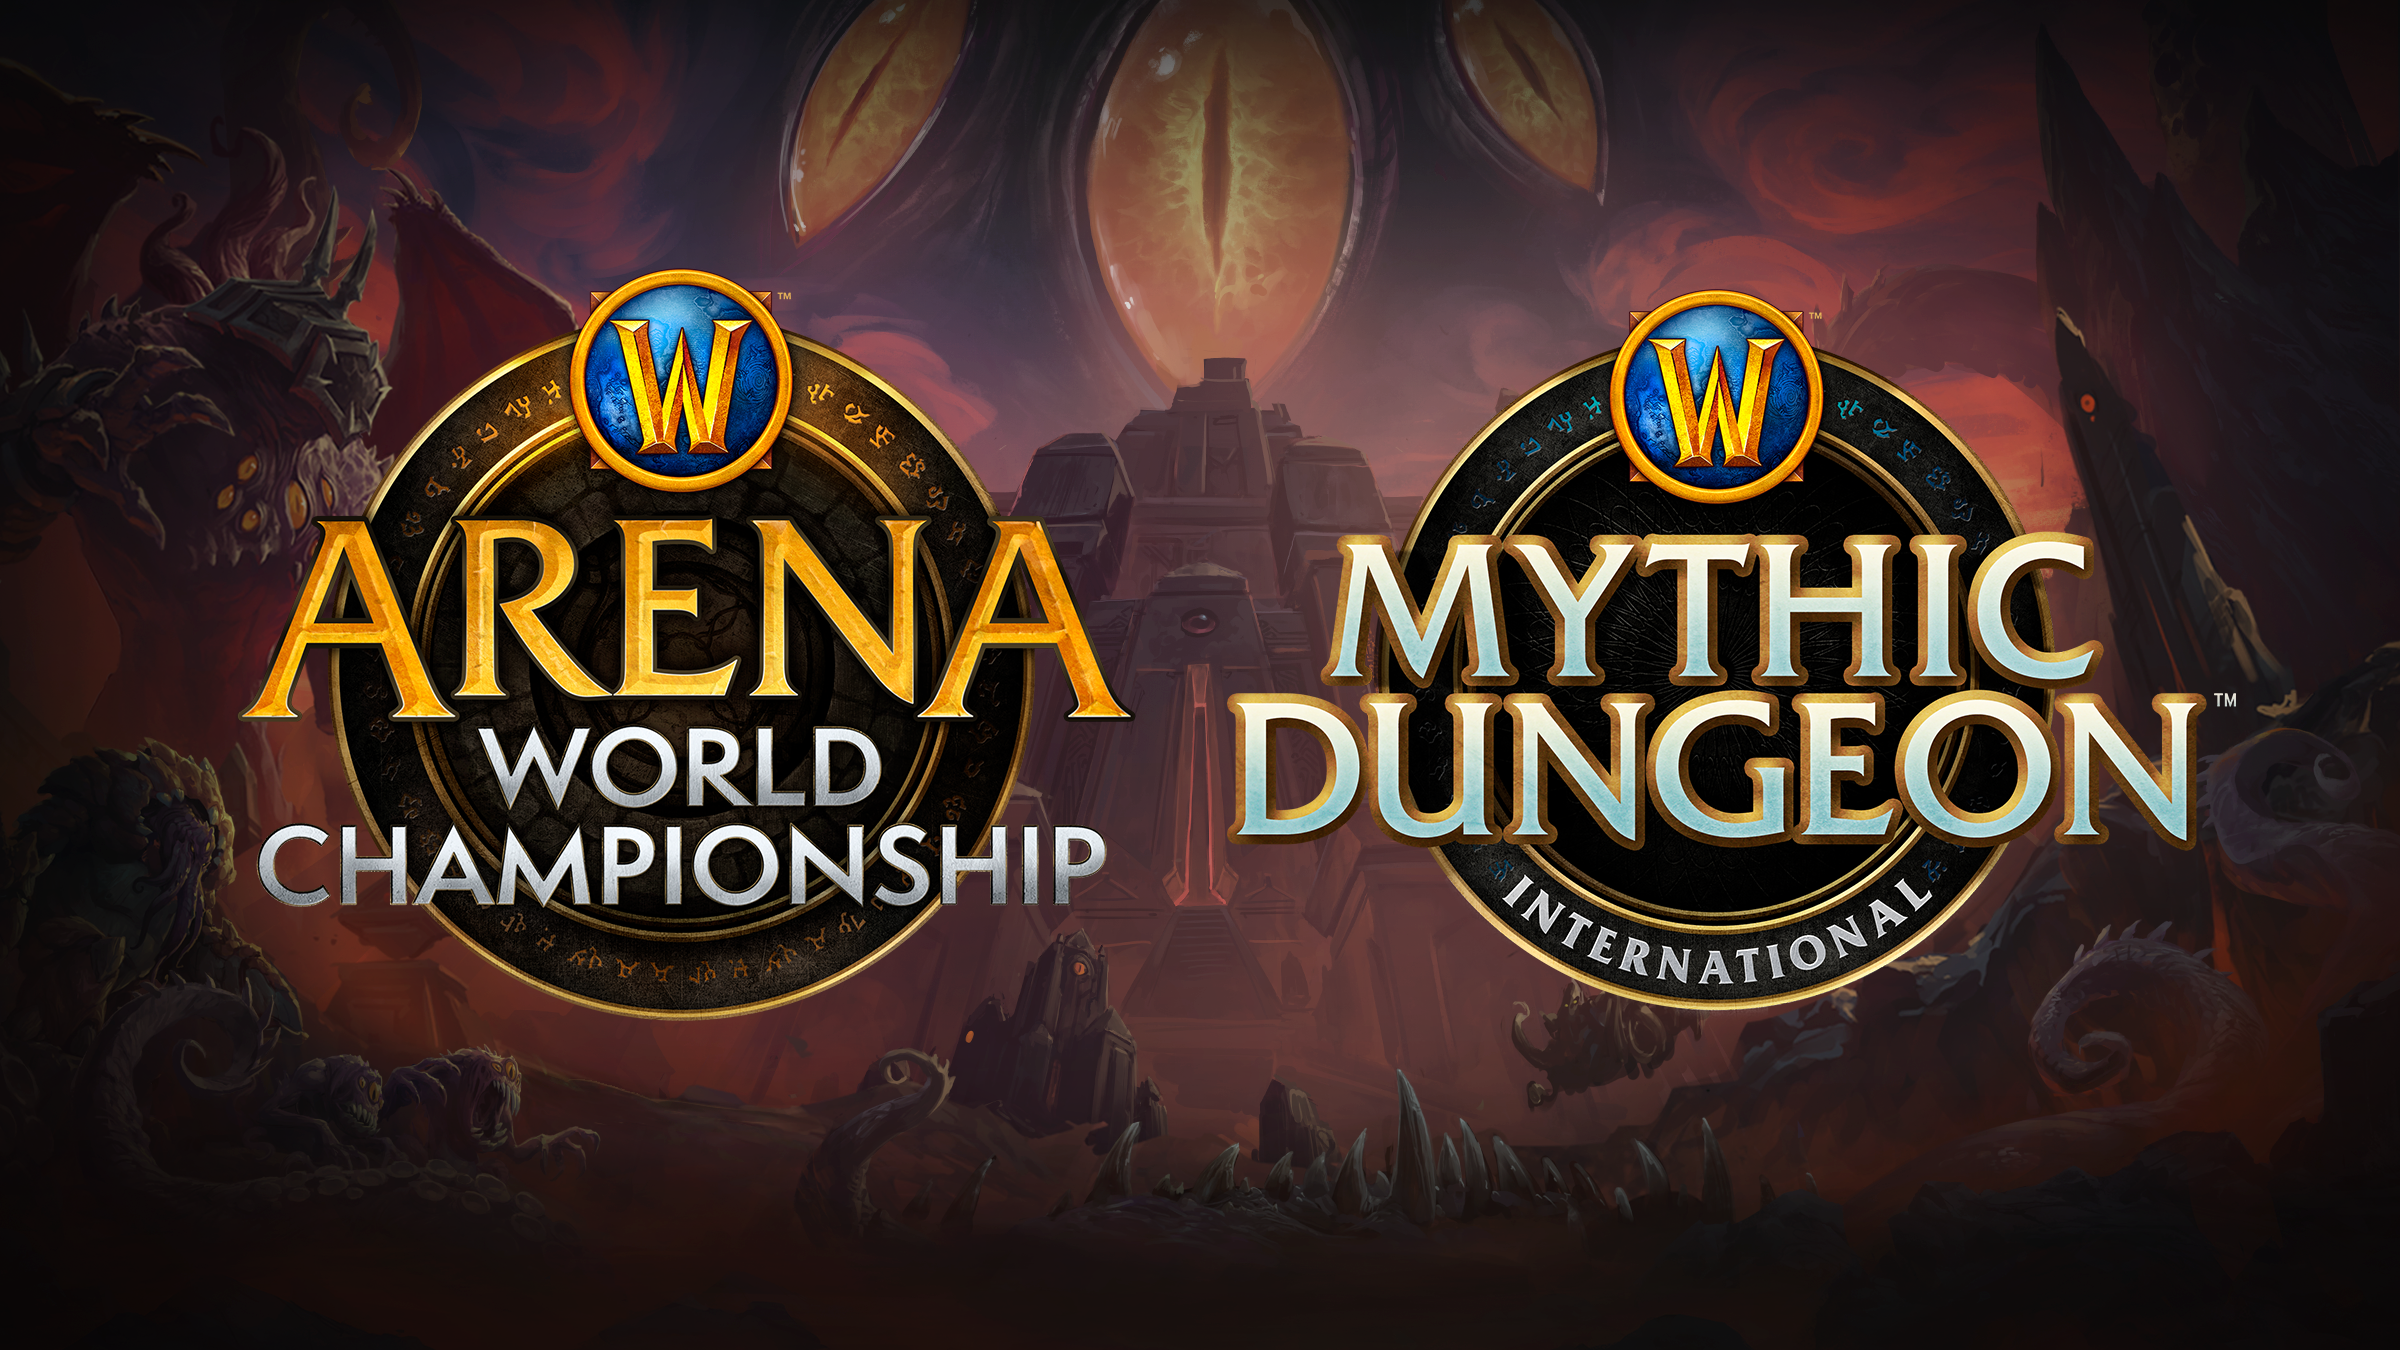 Arena World Championship & Mythic Dungeon International 2020 Plans Revealed